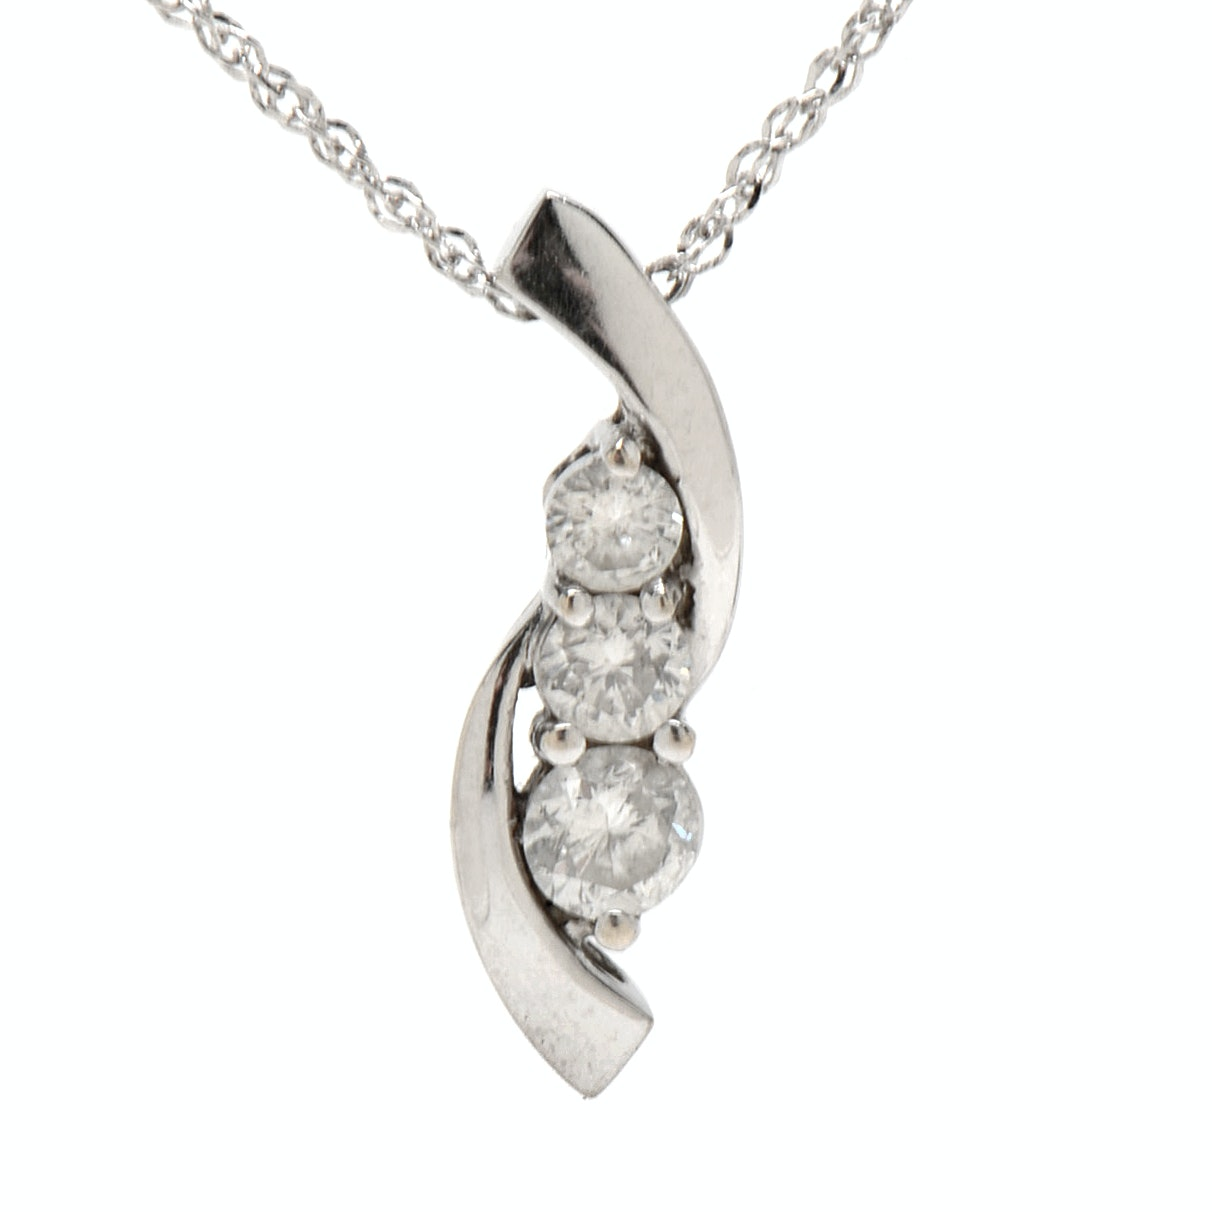 14K White Gold Journey Diamond Pendant Necklace